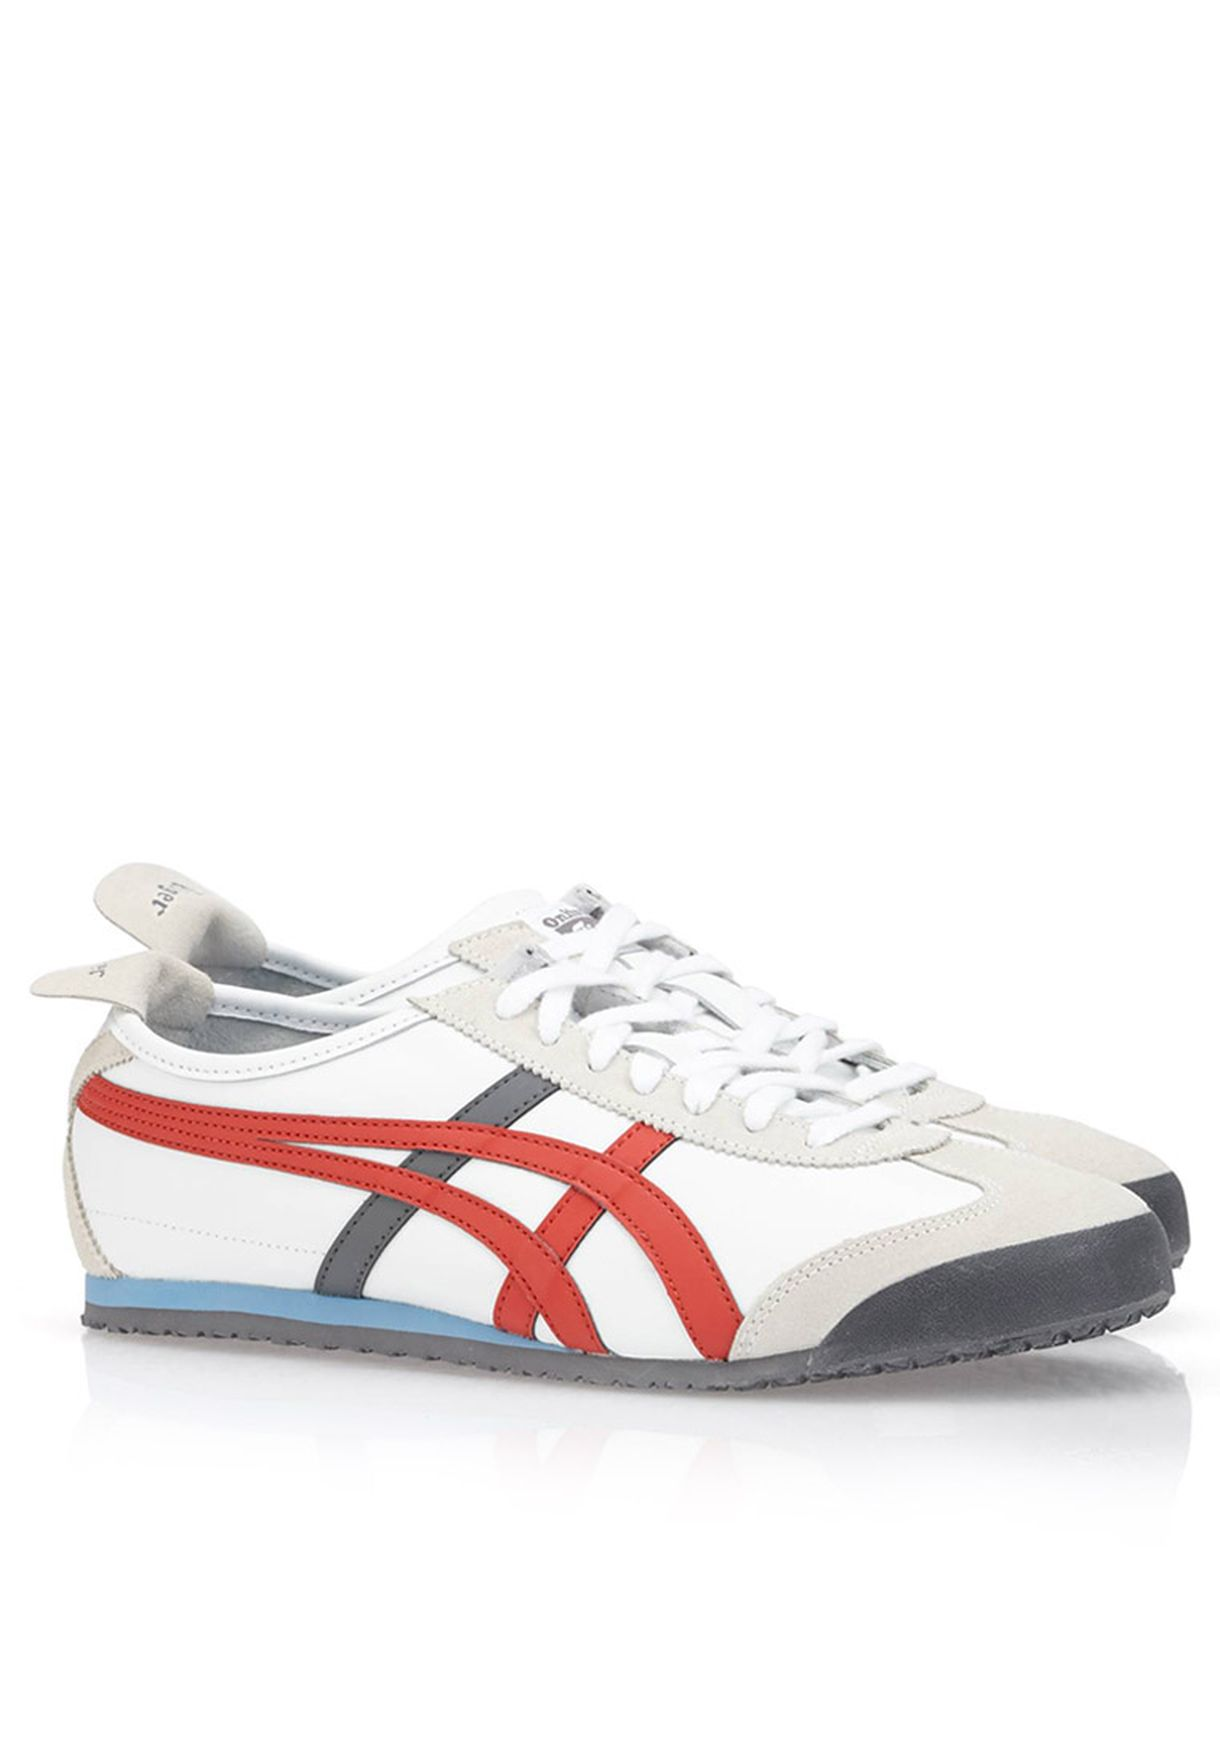 8712341b1c0 Shop Onitsuka Tiger white Mexico 66 Sneakers for Men in Kuwait ...